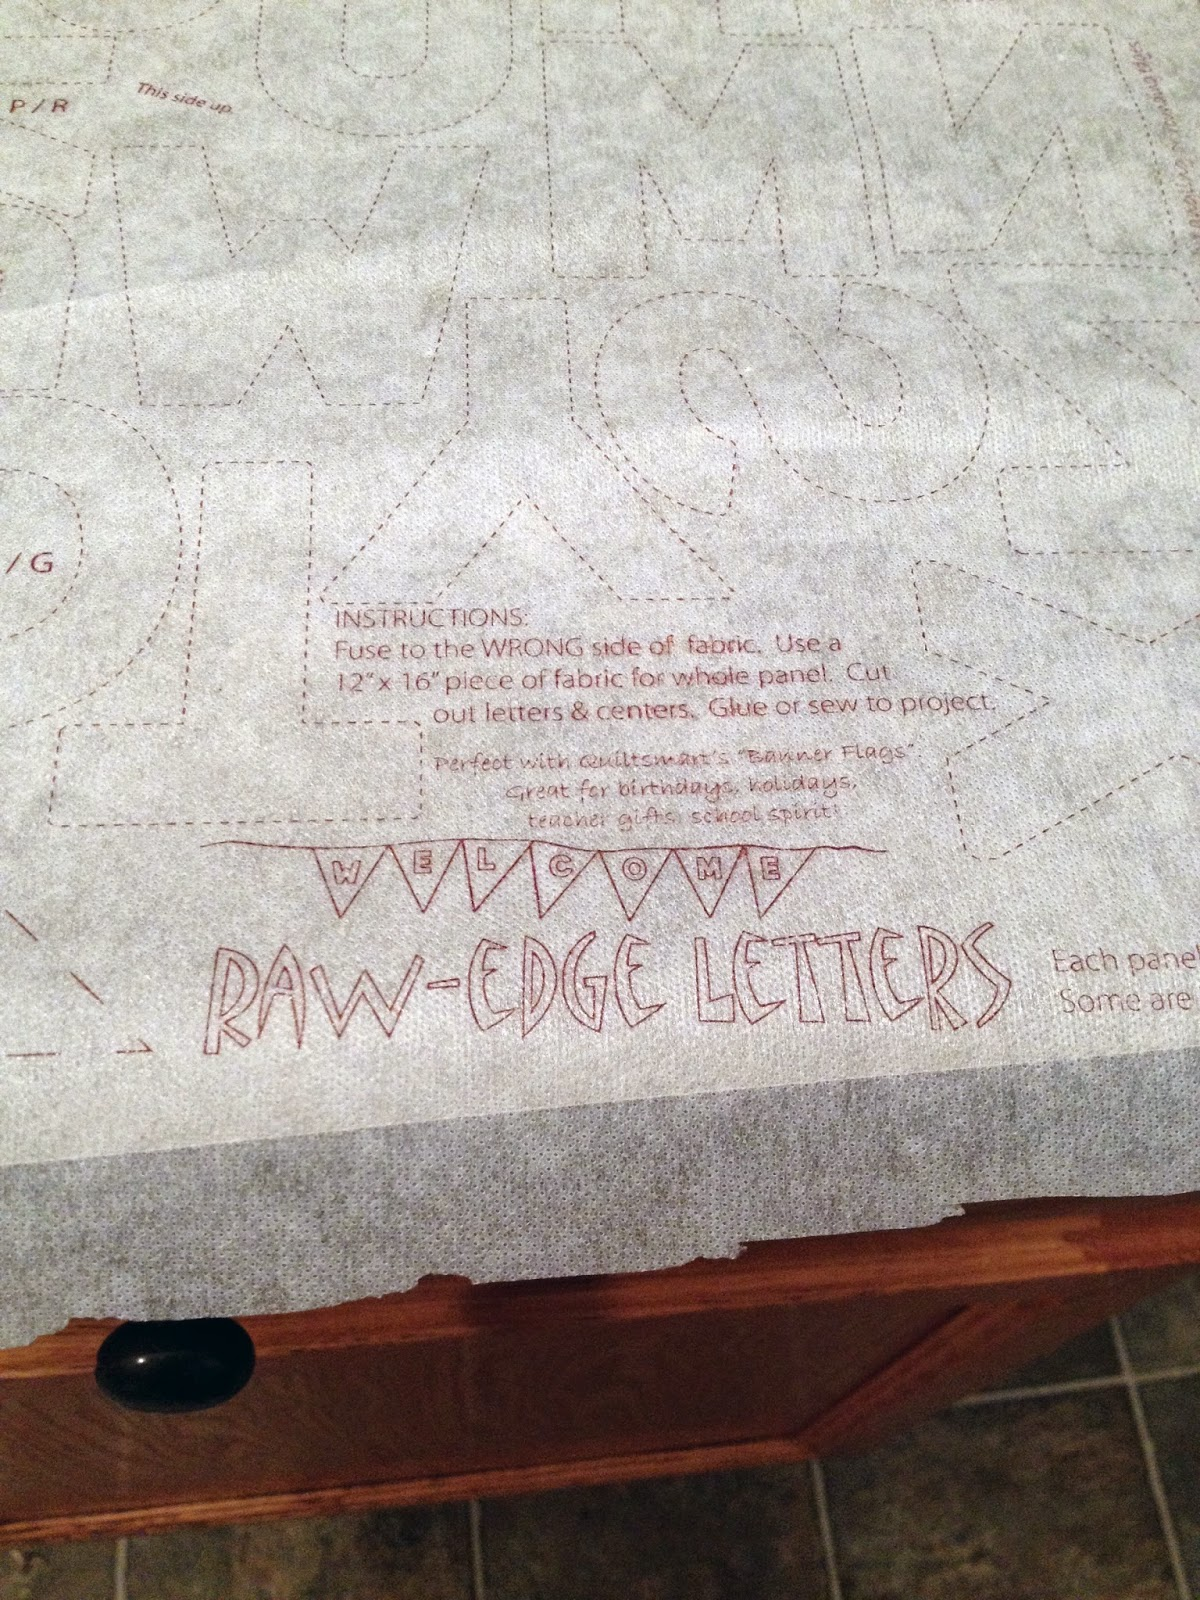 Quiltsmart Raw-Edge Letters